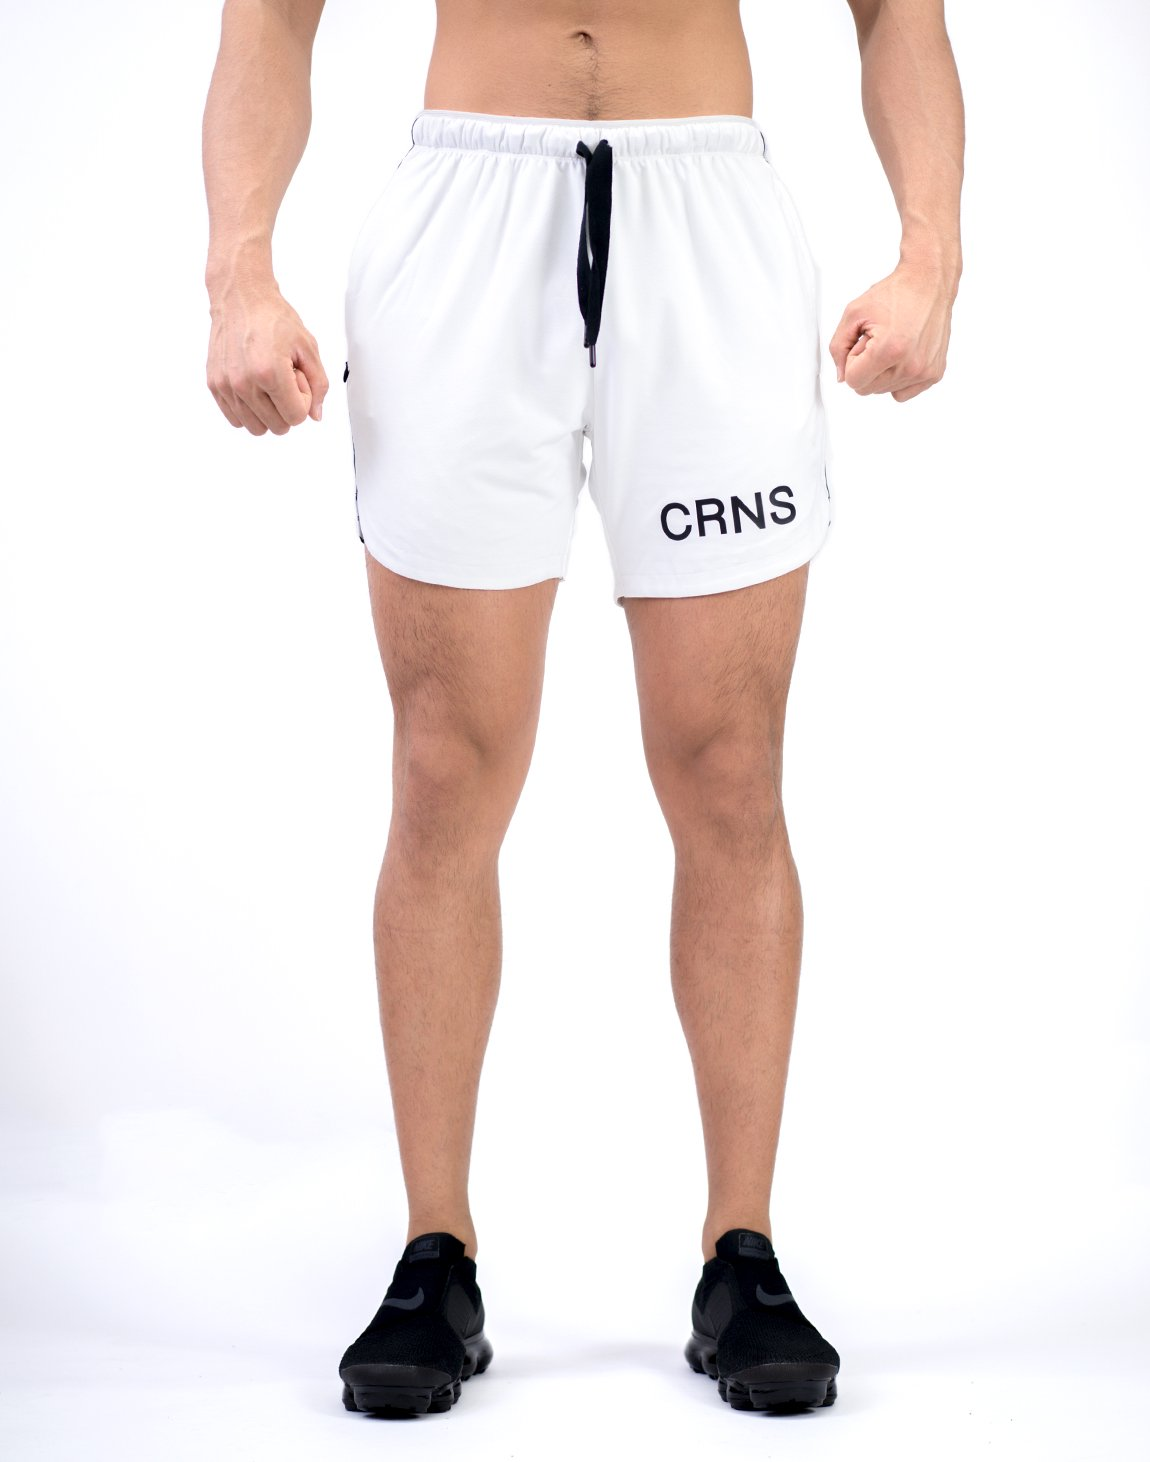 <img class='new_mark_img1' src='https://img.shop-pro.jp/img/new/icons1.gif' style='border:none;display:inline;margin:0px;padding:0px;width:auto;' />CRNS Logo Tape Shorts White